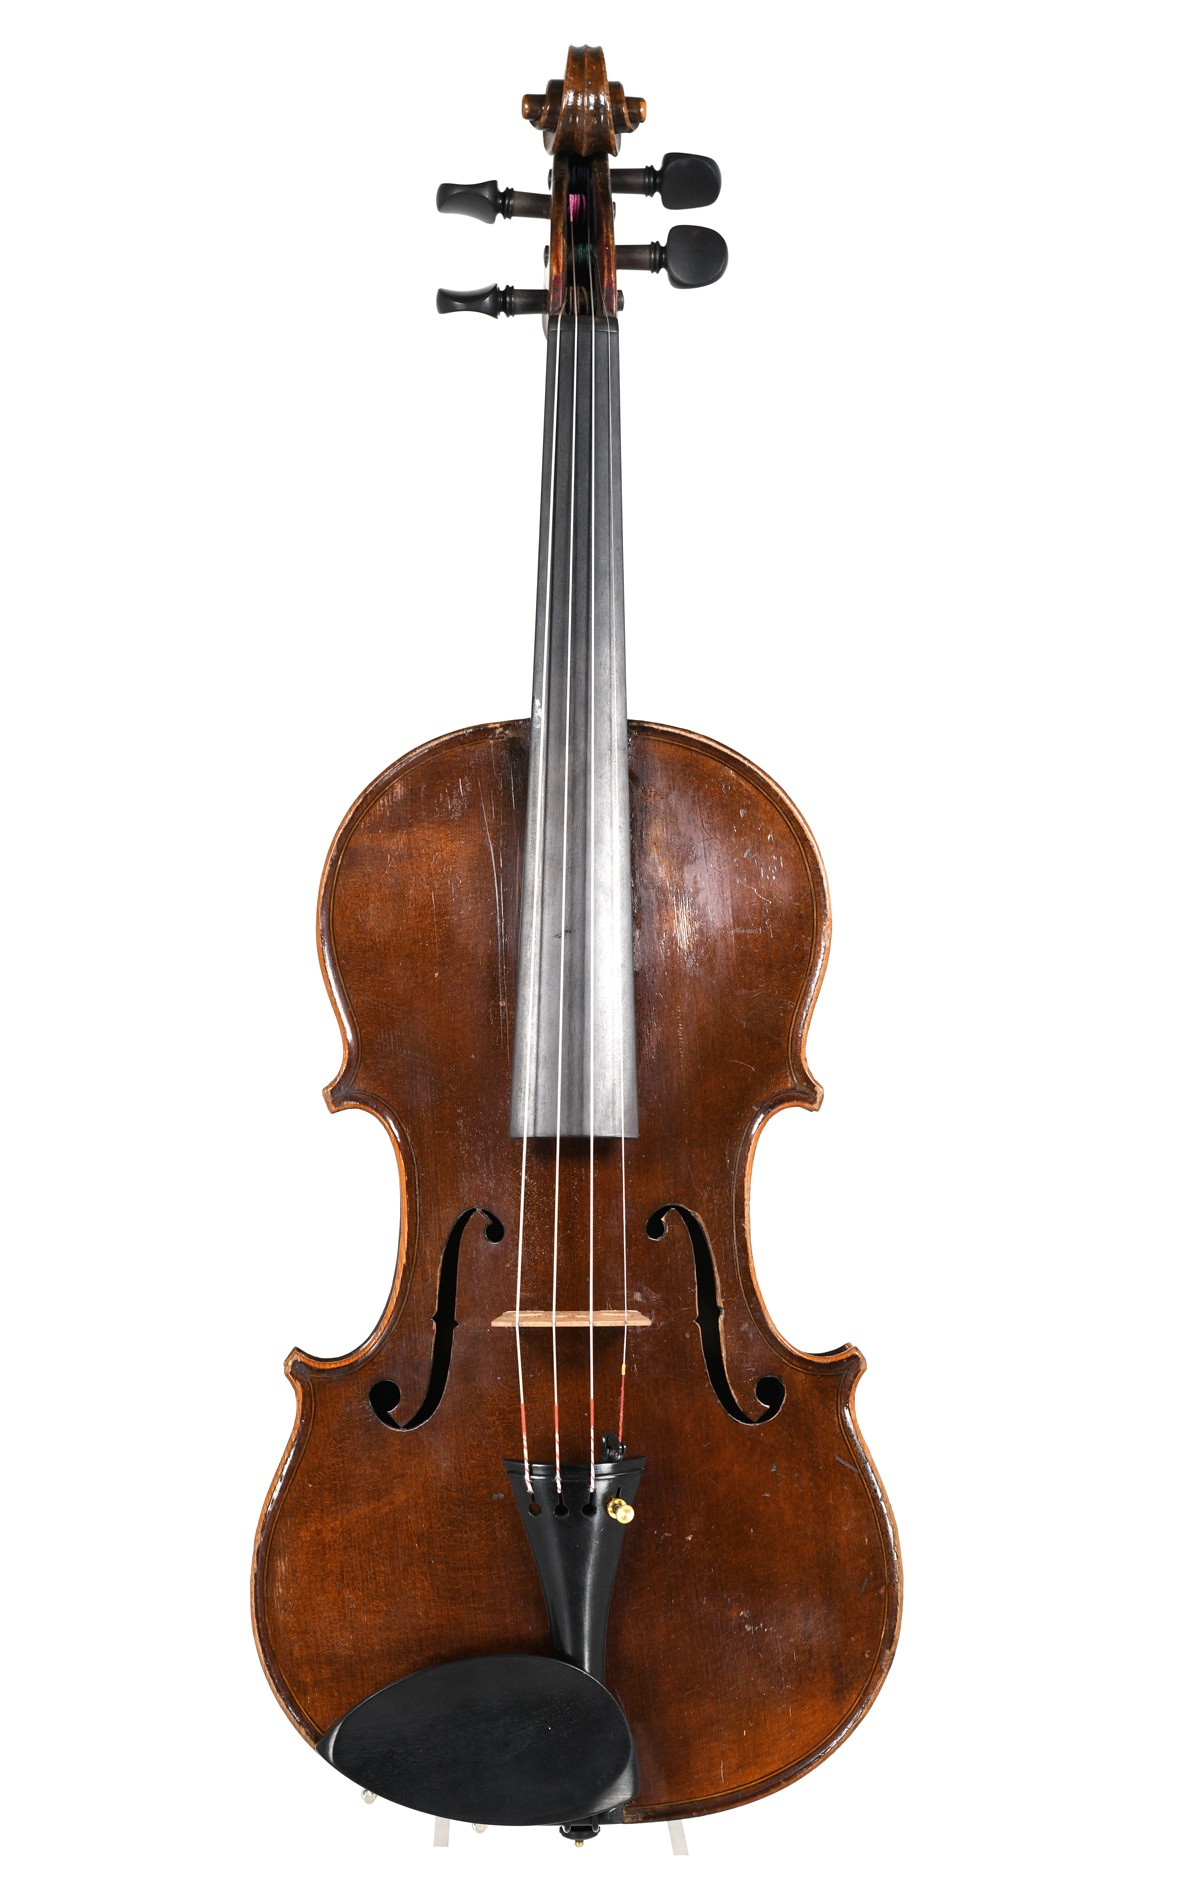 Francois Pillement, 19th century French violin